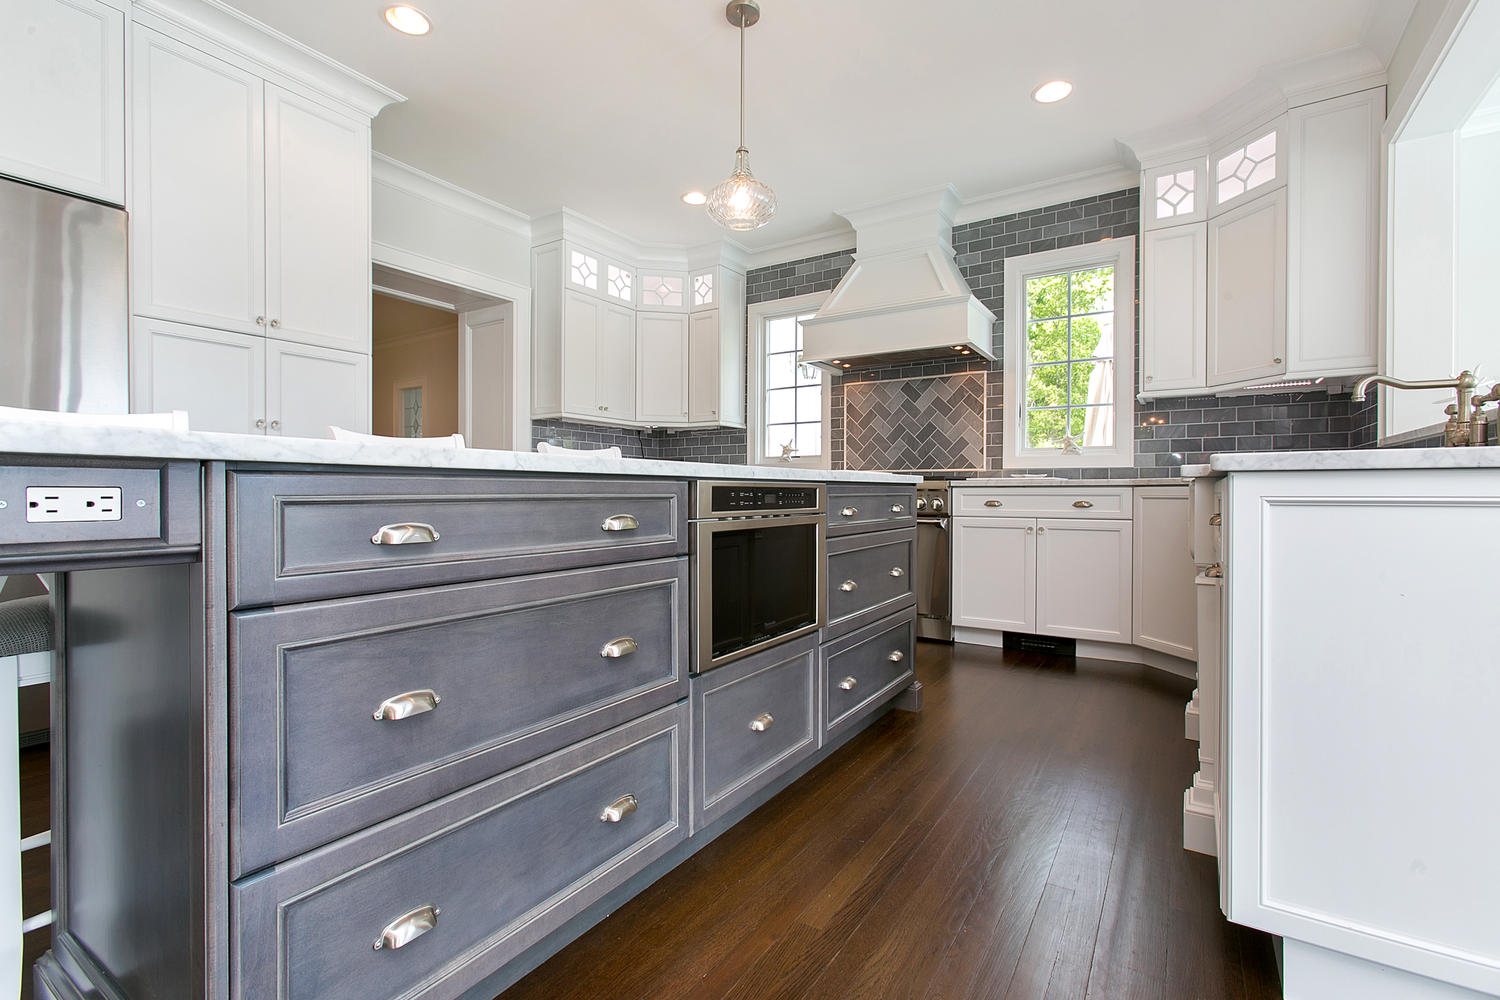 Kitchen Island Outlet Kitchen Cabinetry Design Line Kitchens In Sea Girt Nj